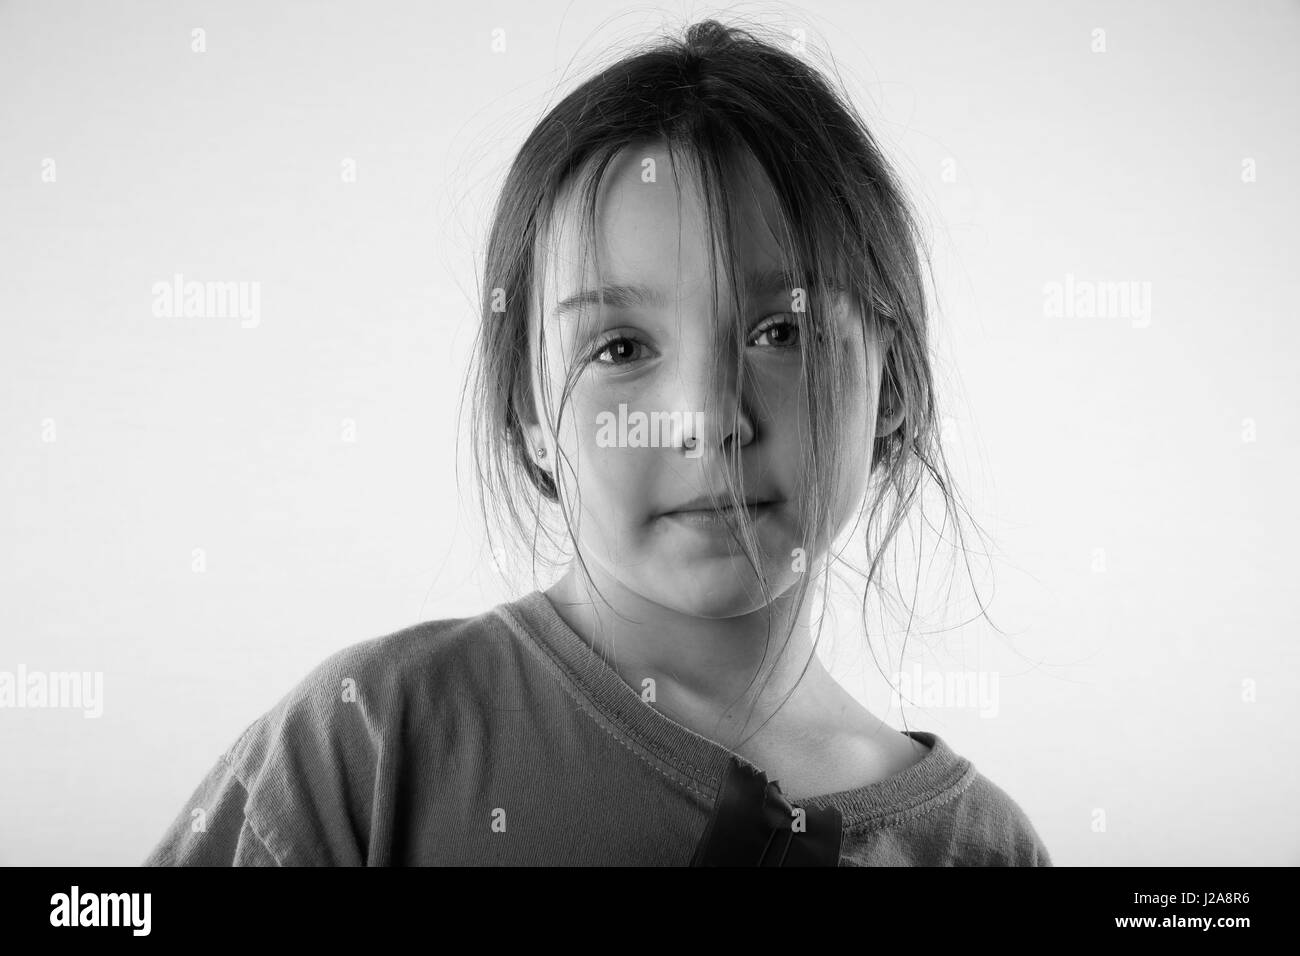 A 9 year old girl looking serious on white background. - Stock Image